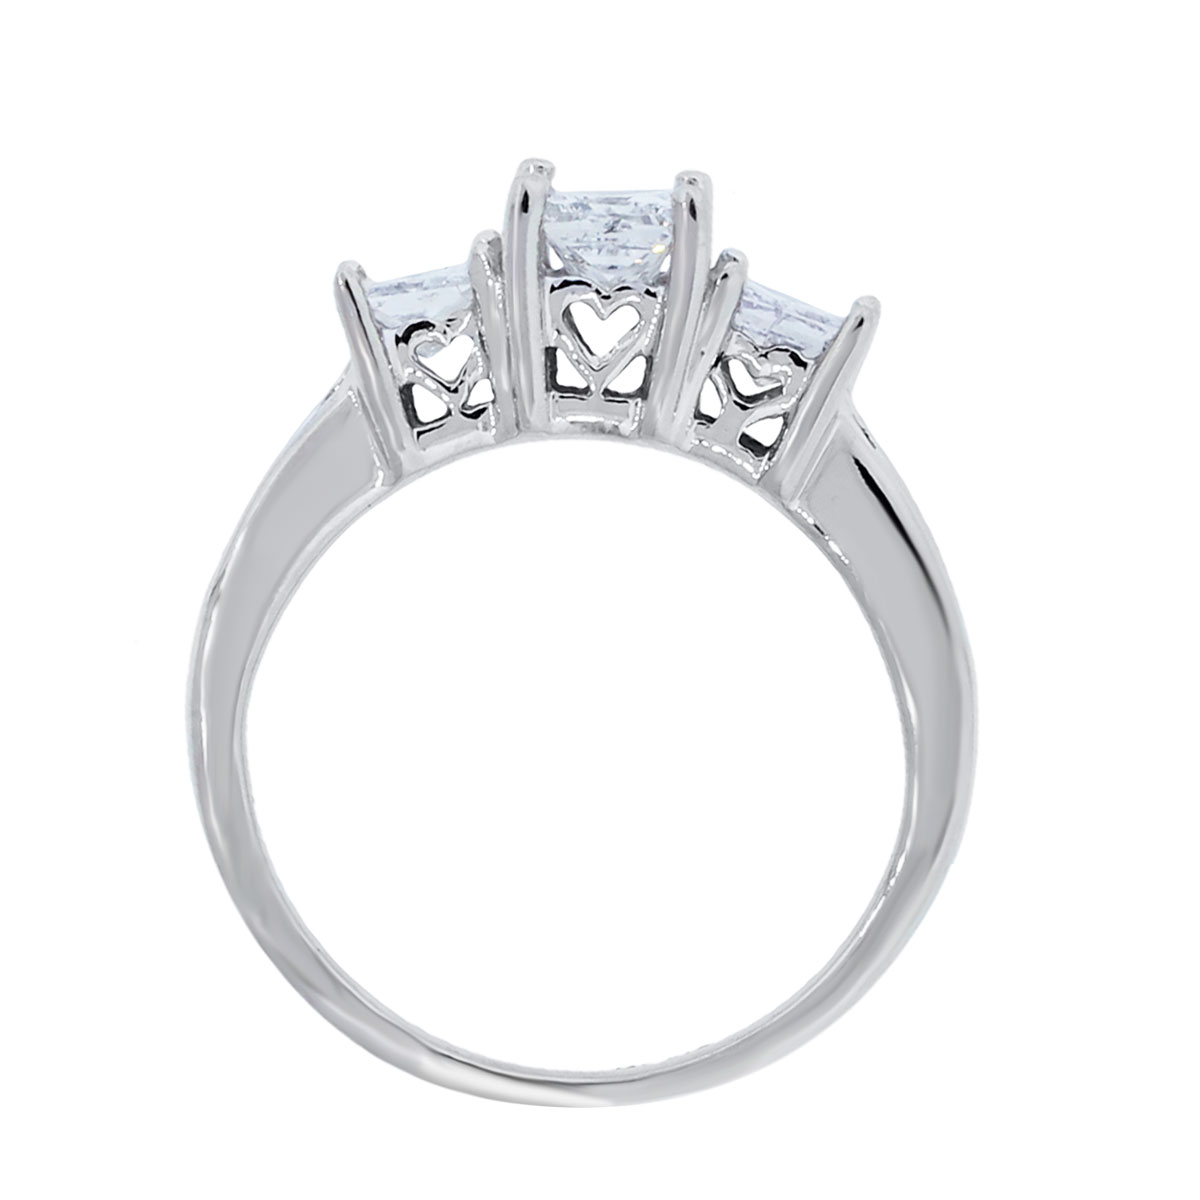 14k White Gold 1.10ctw Princess Cut Diamond Engagement Ring